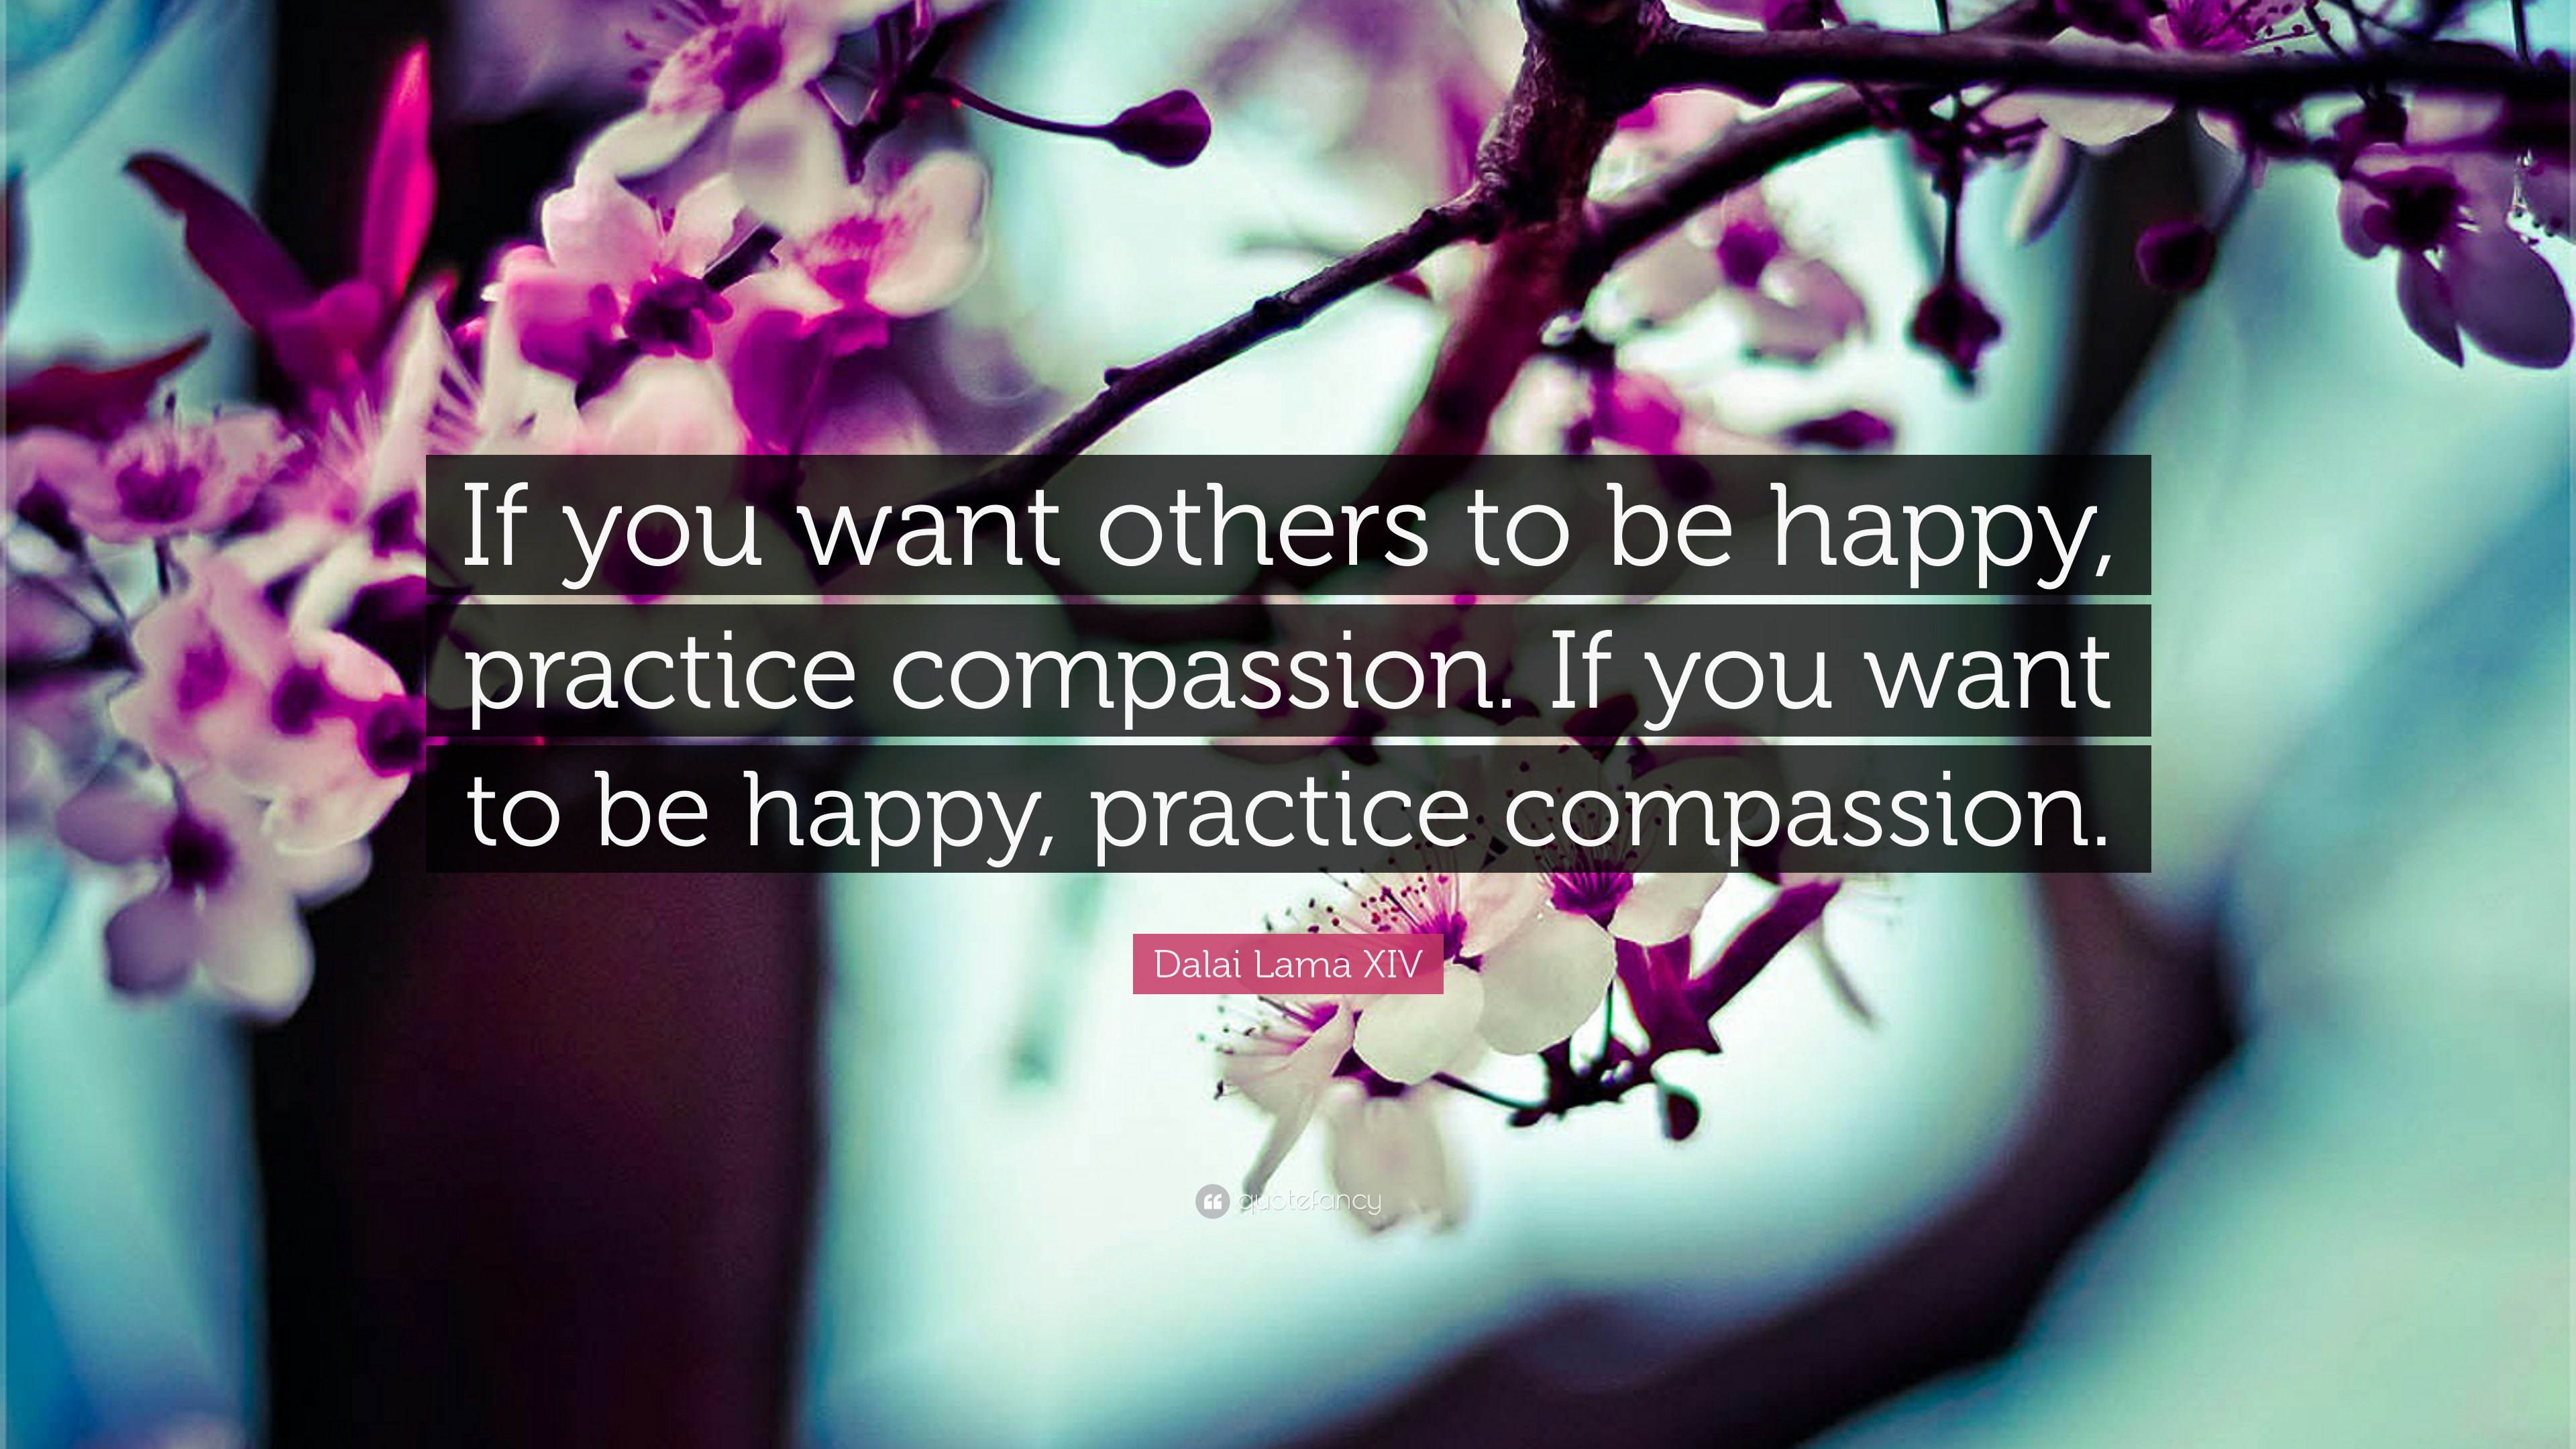 Dalai Lama Xiv Quote: €�if You Want Others To Be Happy, Practicepassion Dalai